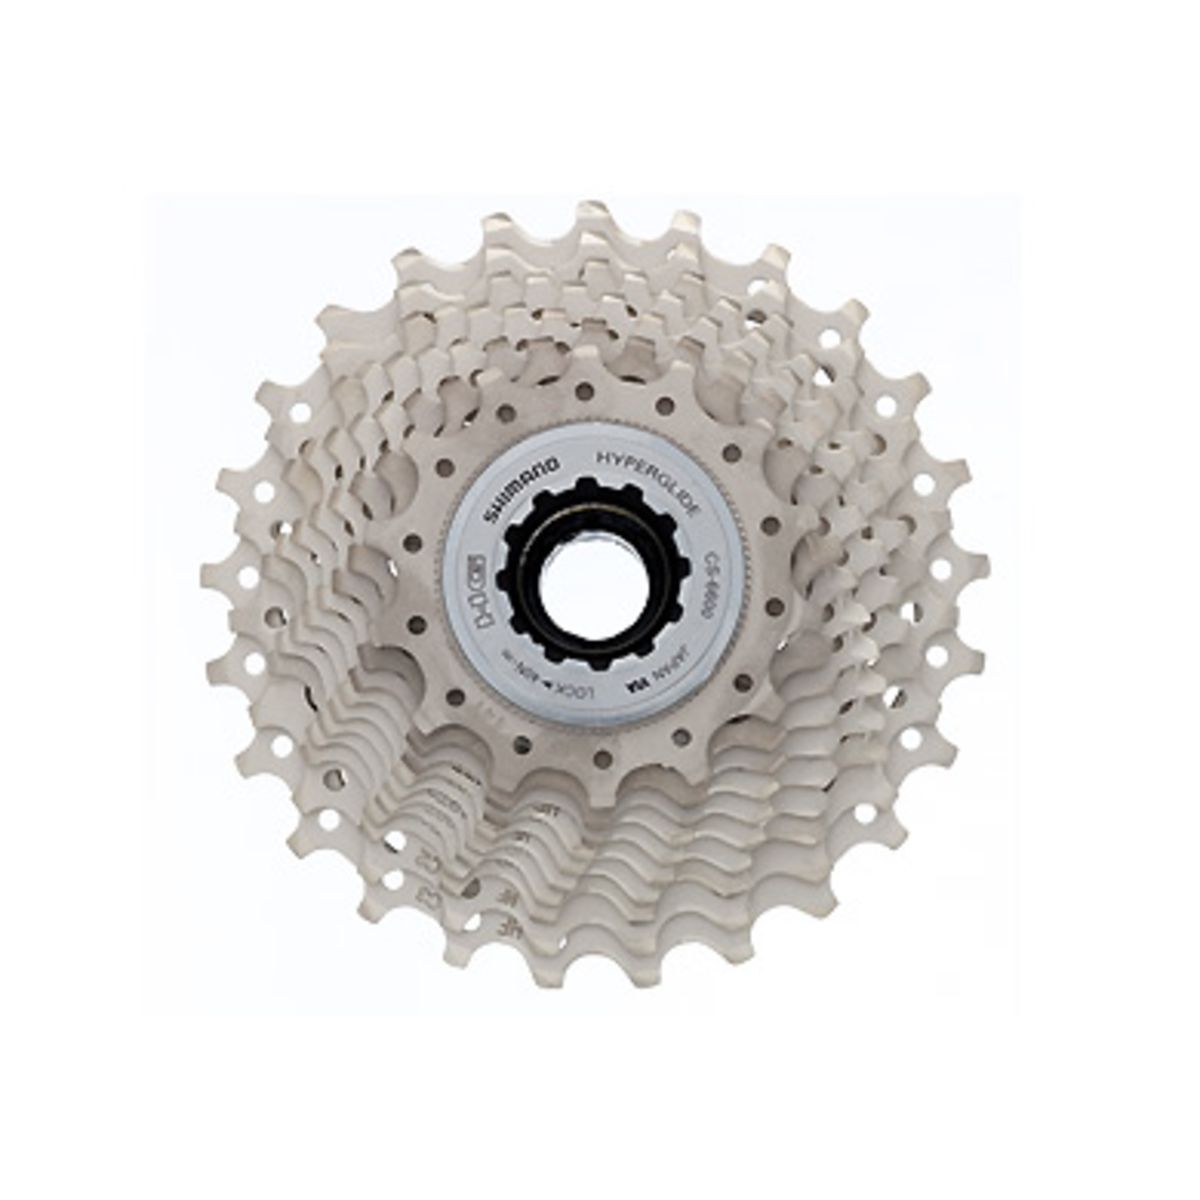 Ultegra CS-6600 10-speed cassette 14-25 ratio